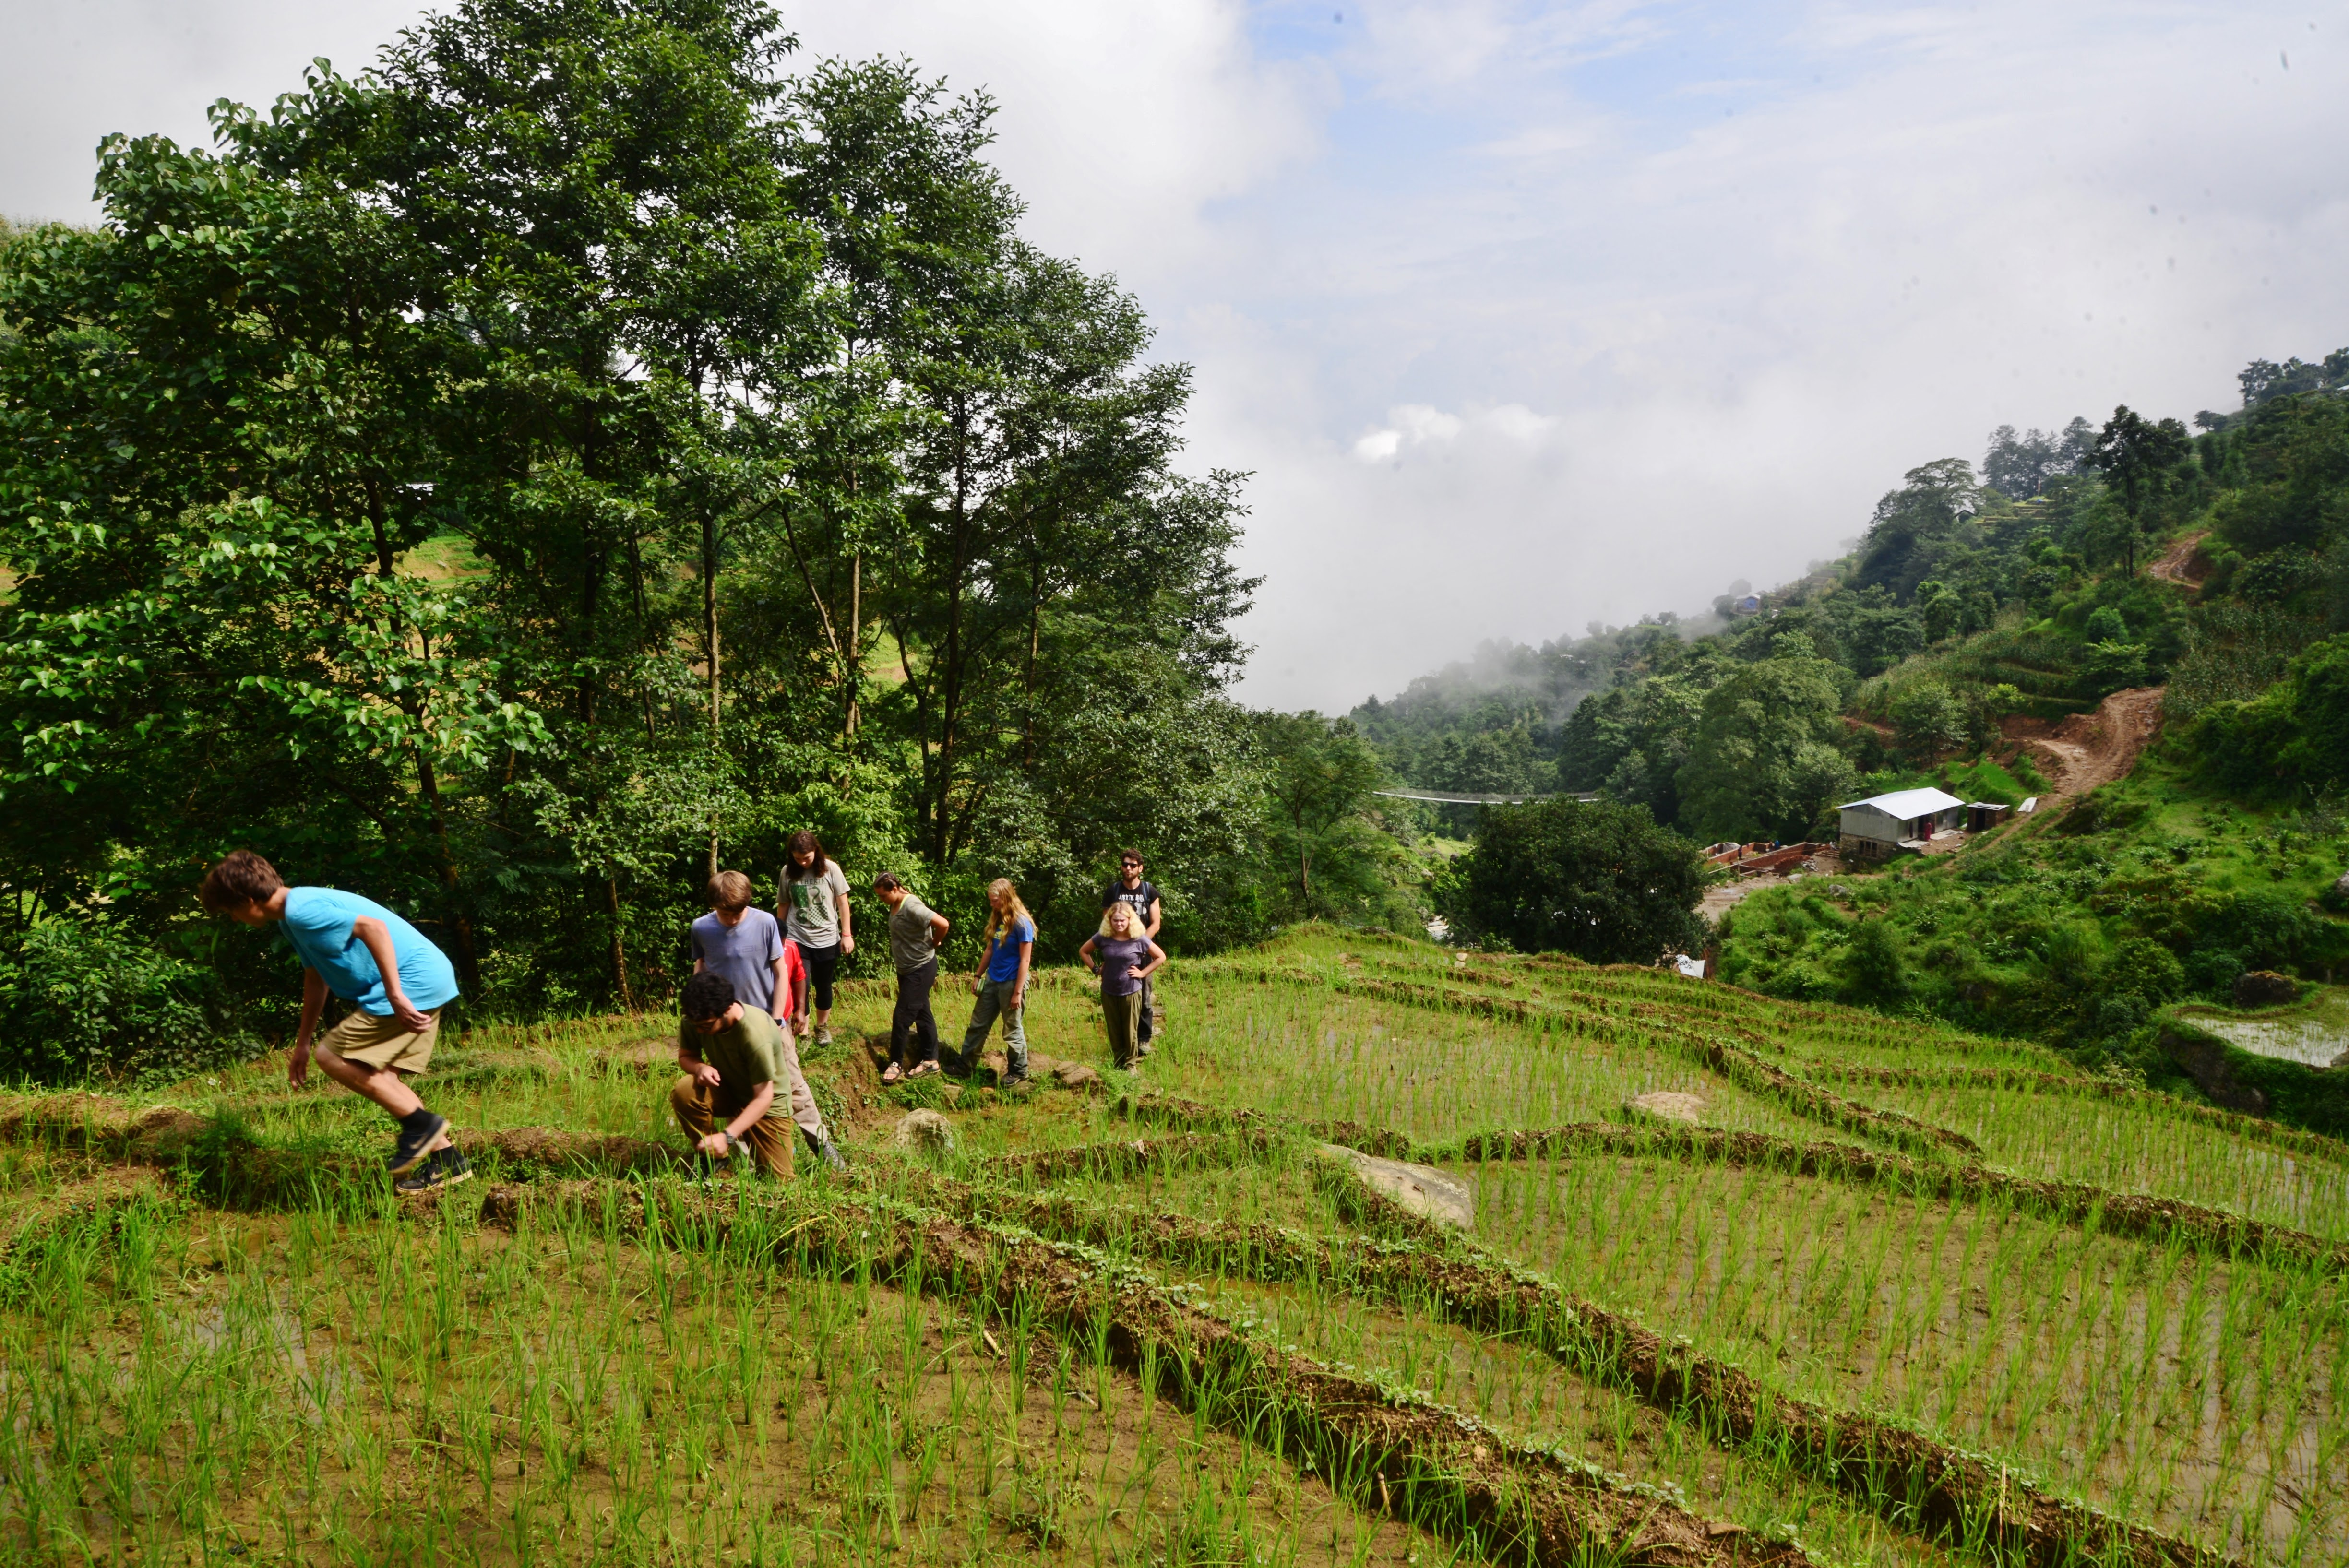 Summer Program - Preserving the Environment | Global Routes: Nepal. The Roof of the World. Service and Cultural Immersion.